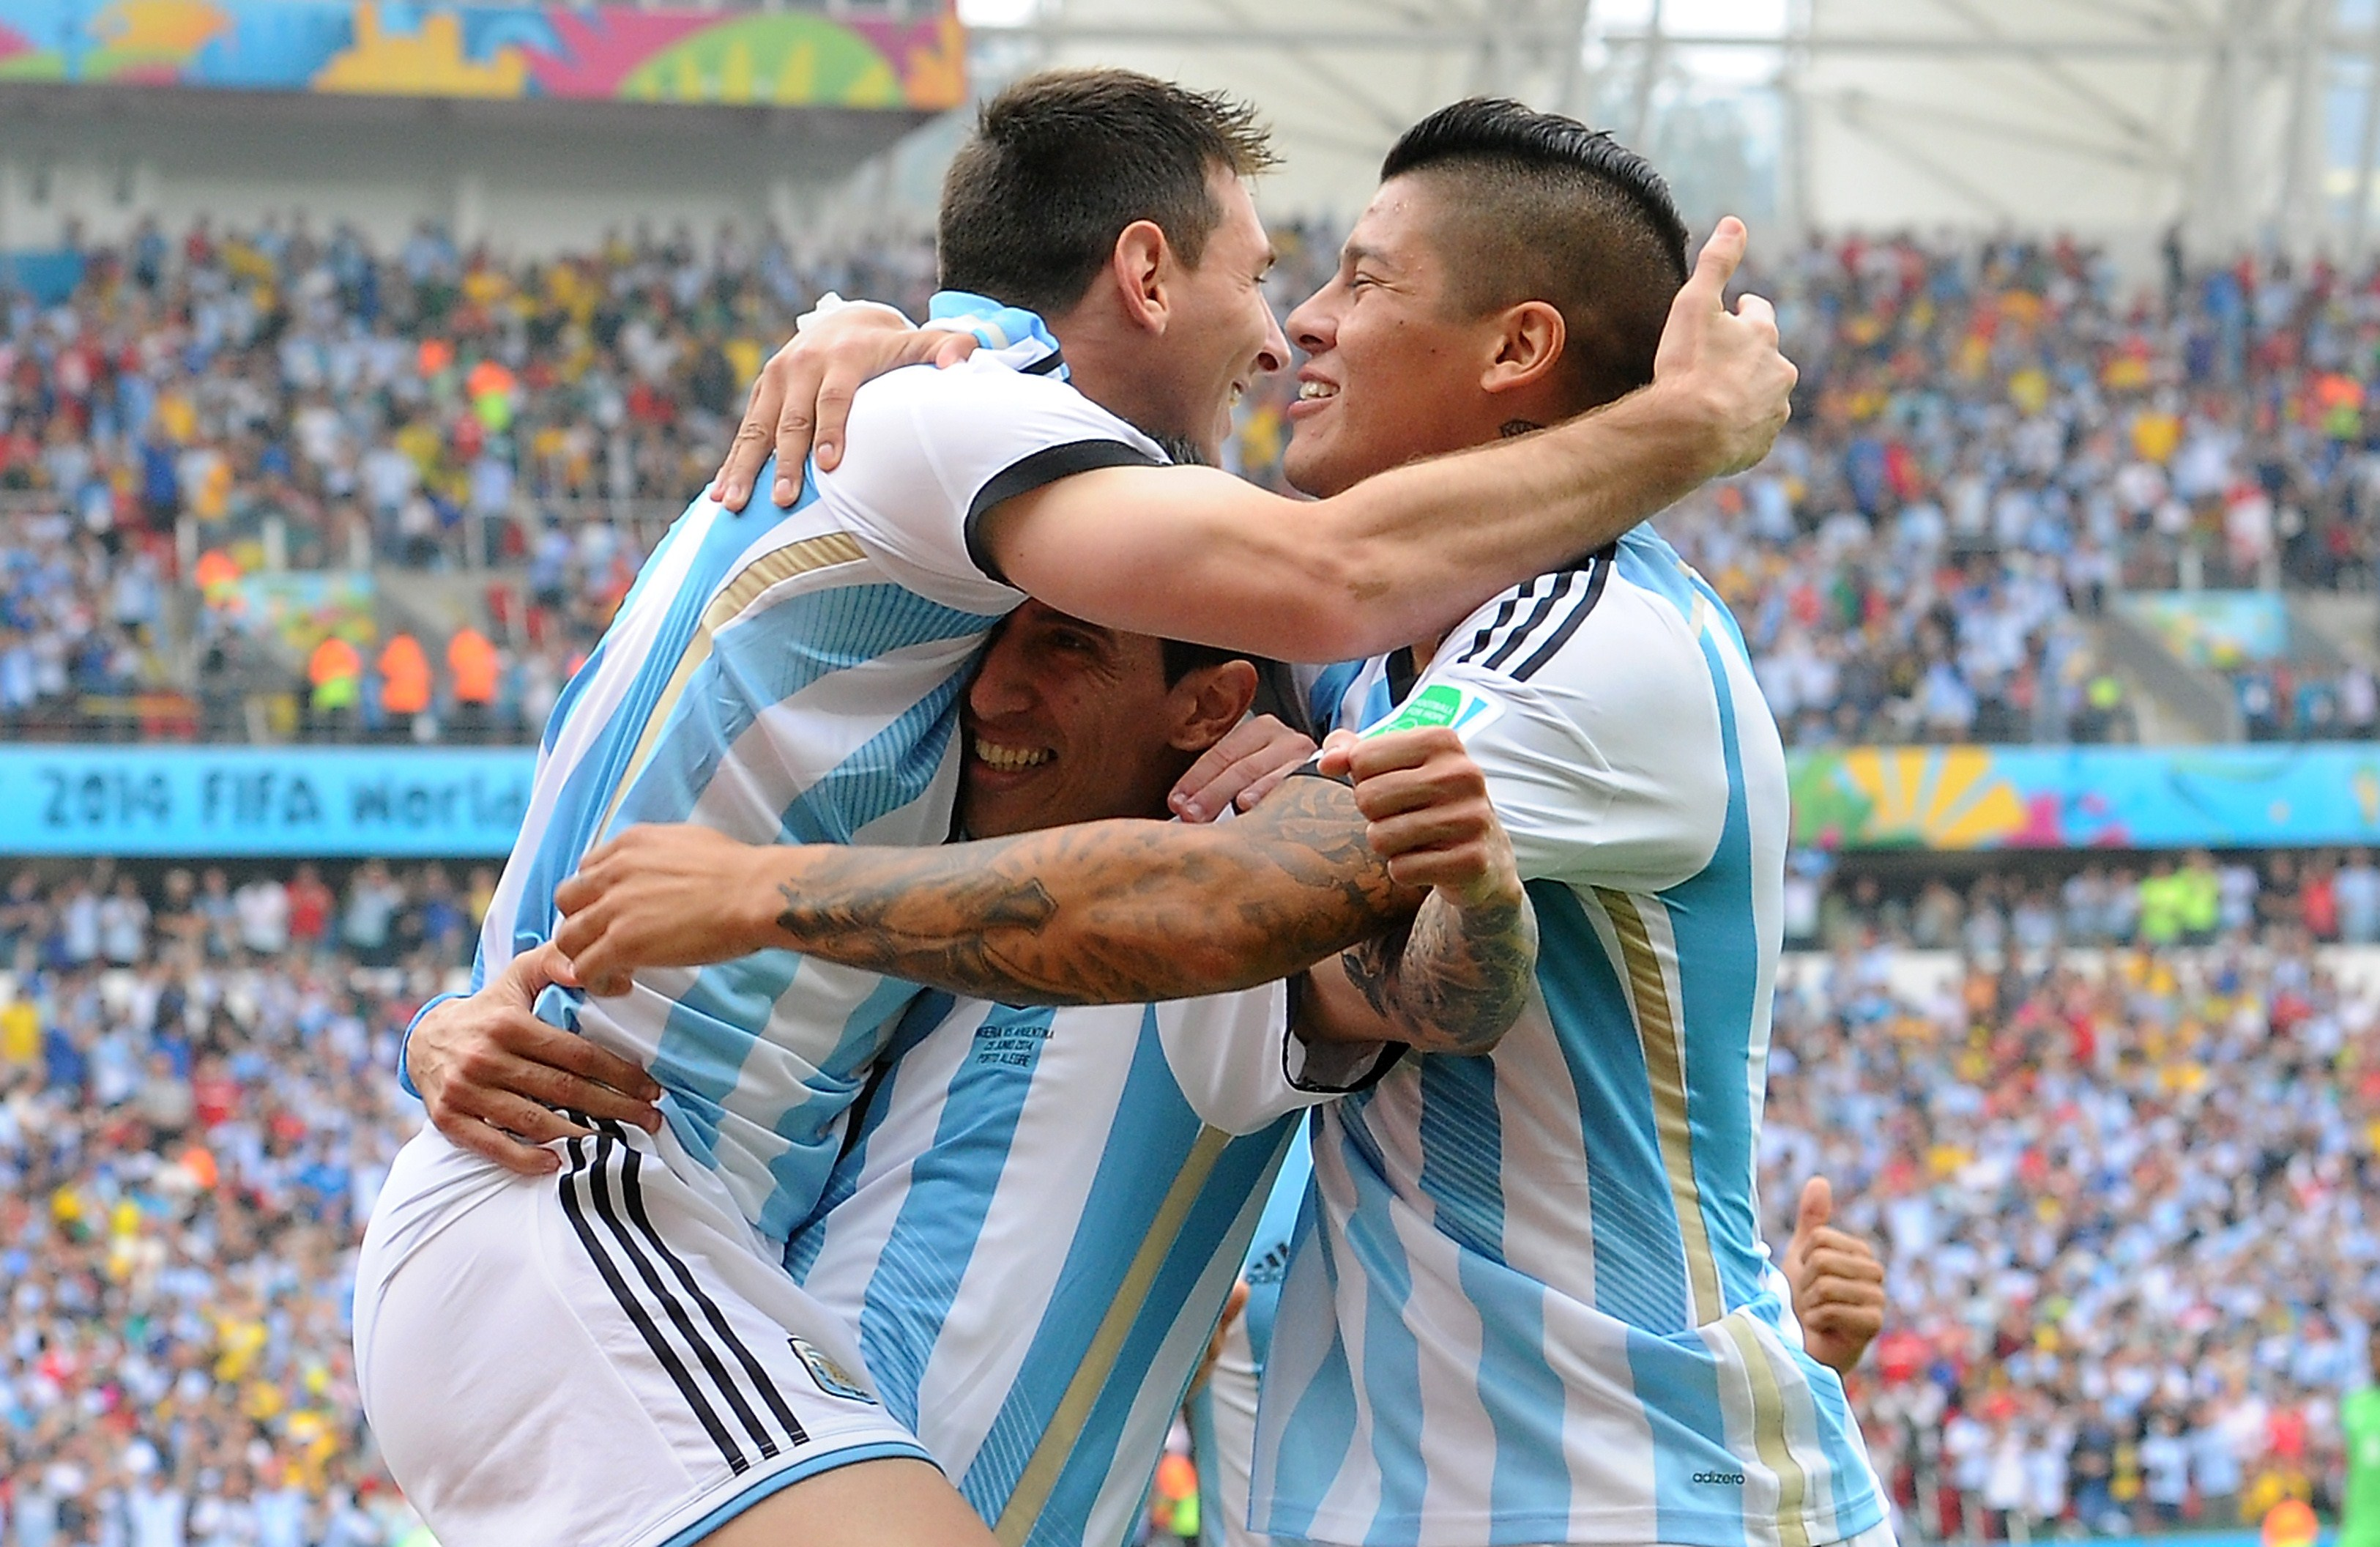 Argentina's forward and captain Lionel Messi (L) celebrates with teammates Argentina's midfielder Angel Di Maria (C) and Argentina's defender Marcos Rojo (R) after scoring during a match between Nigeria and Argentina on June 25, 2014,during the 2014 FIFA World Cup.